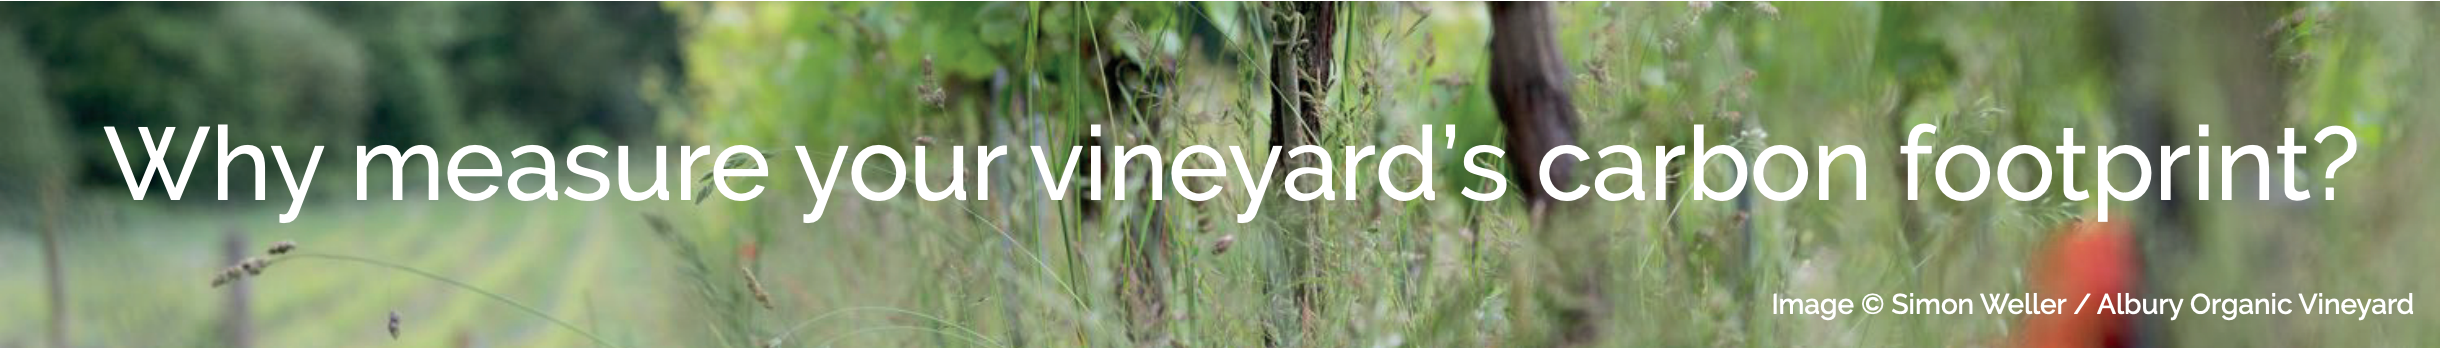 Why Measure the Carbon Footprint of Vineyards?